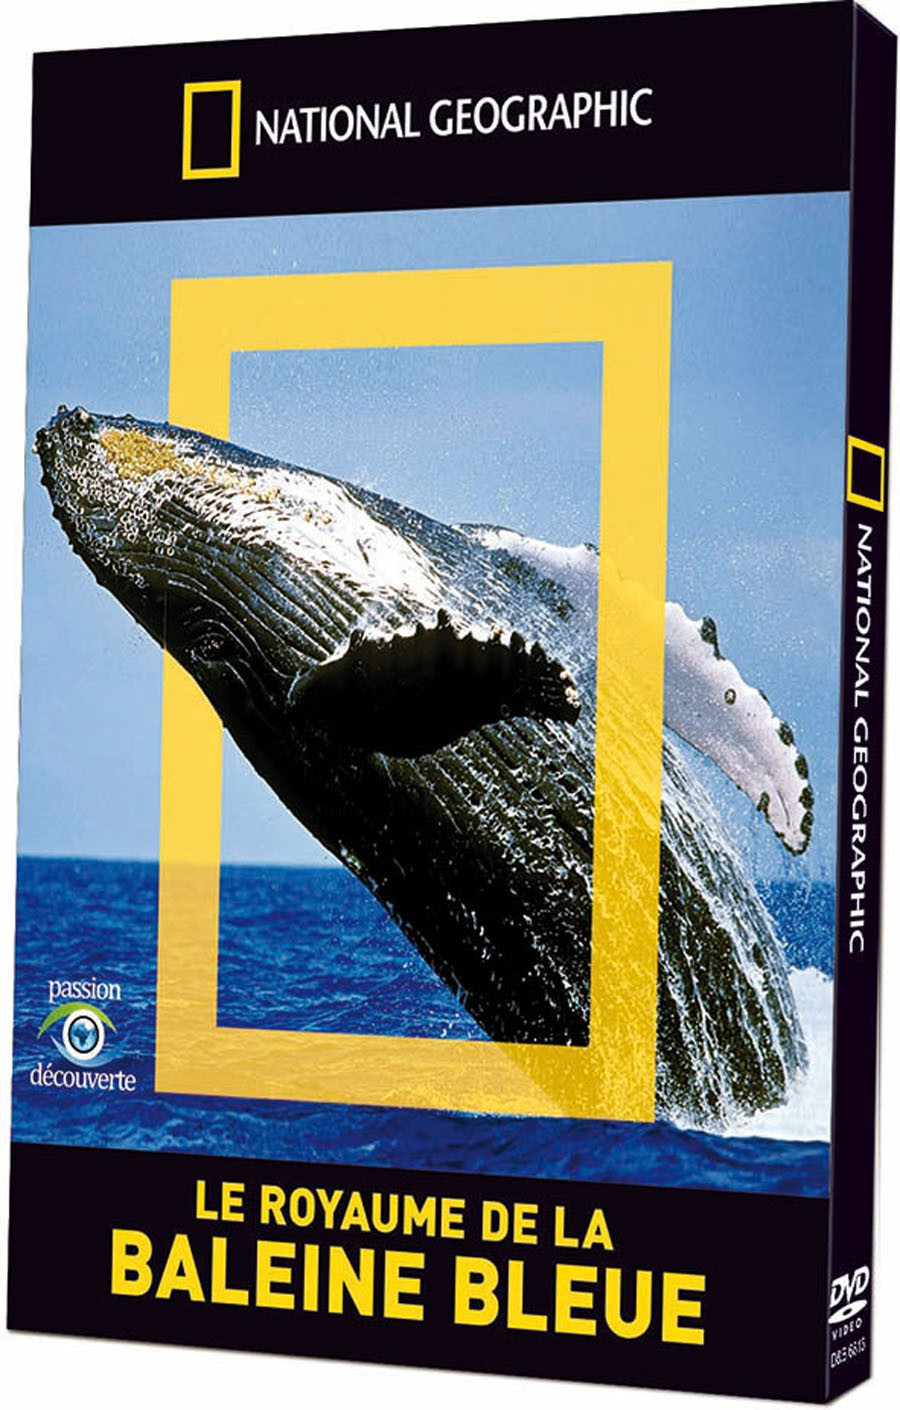 NATIONAL GEOGRAPHIC - LE ROYAUME DE LA BALEINE BLEUE